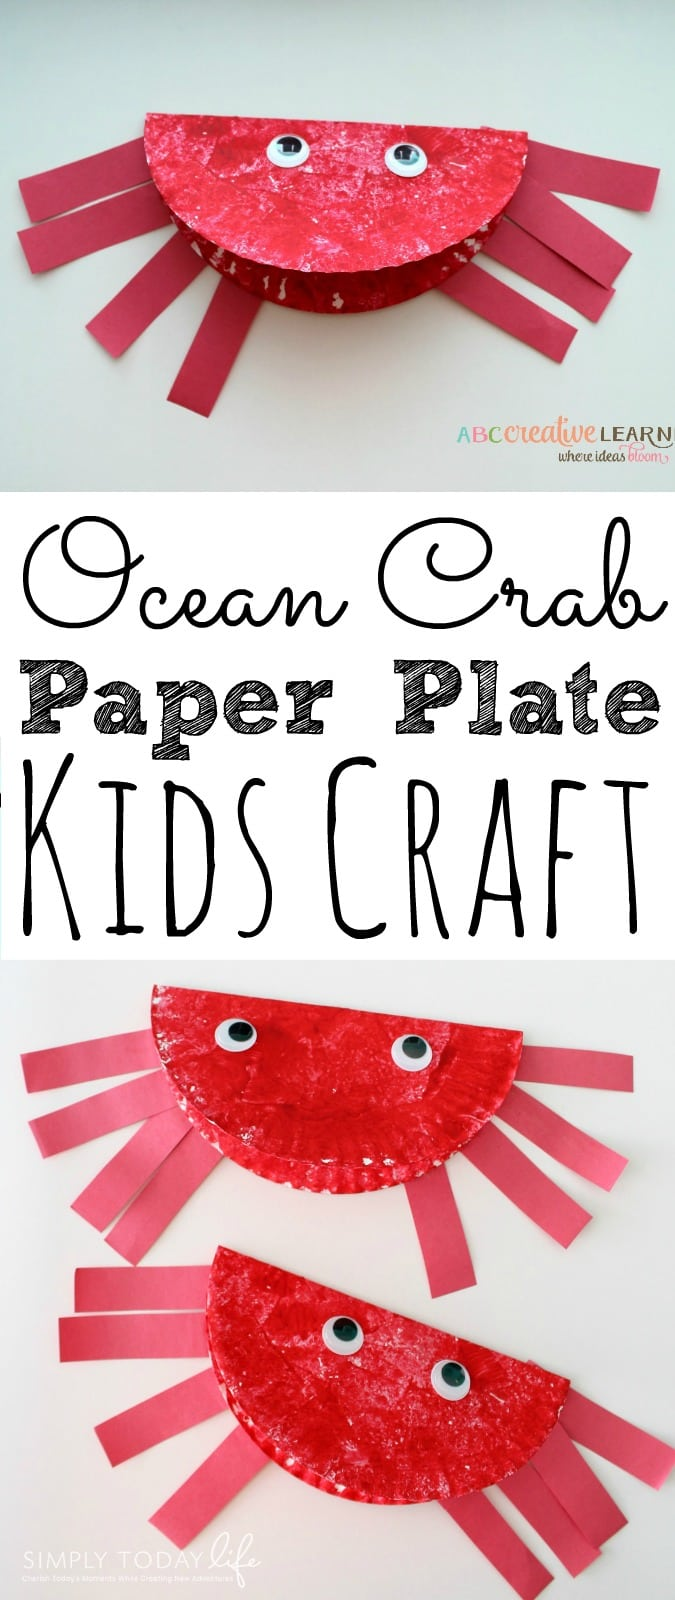 Paper Plate Ocean Crab Craft For Kids  sc 1 st  ABC Creative Learning & Easy Paper Plate Ocean Crab Craft For Kids To Celebrate Summer Time